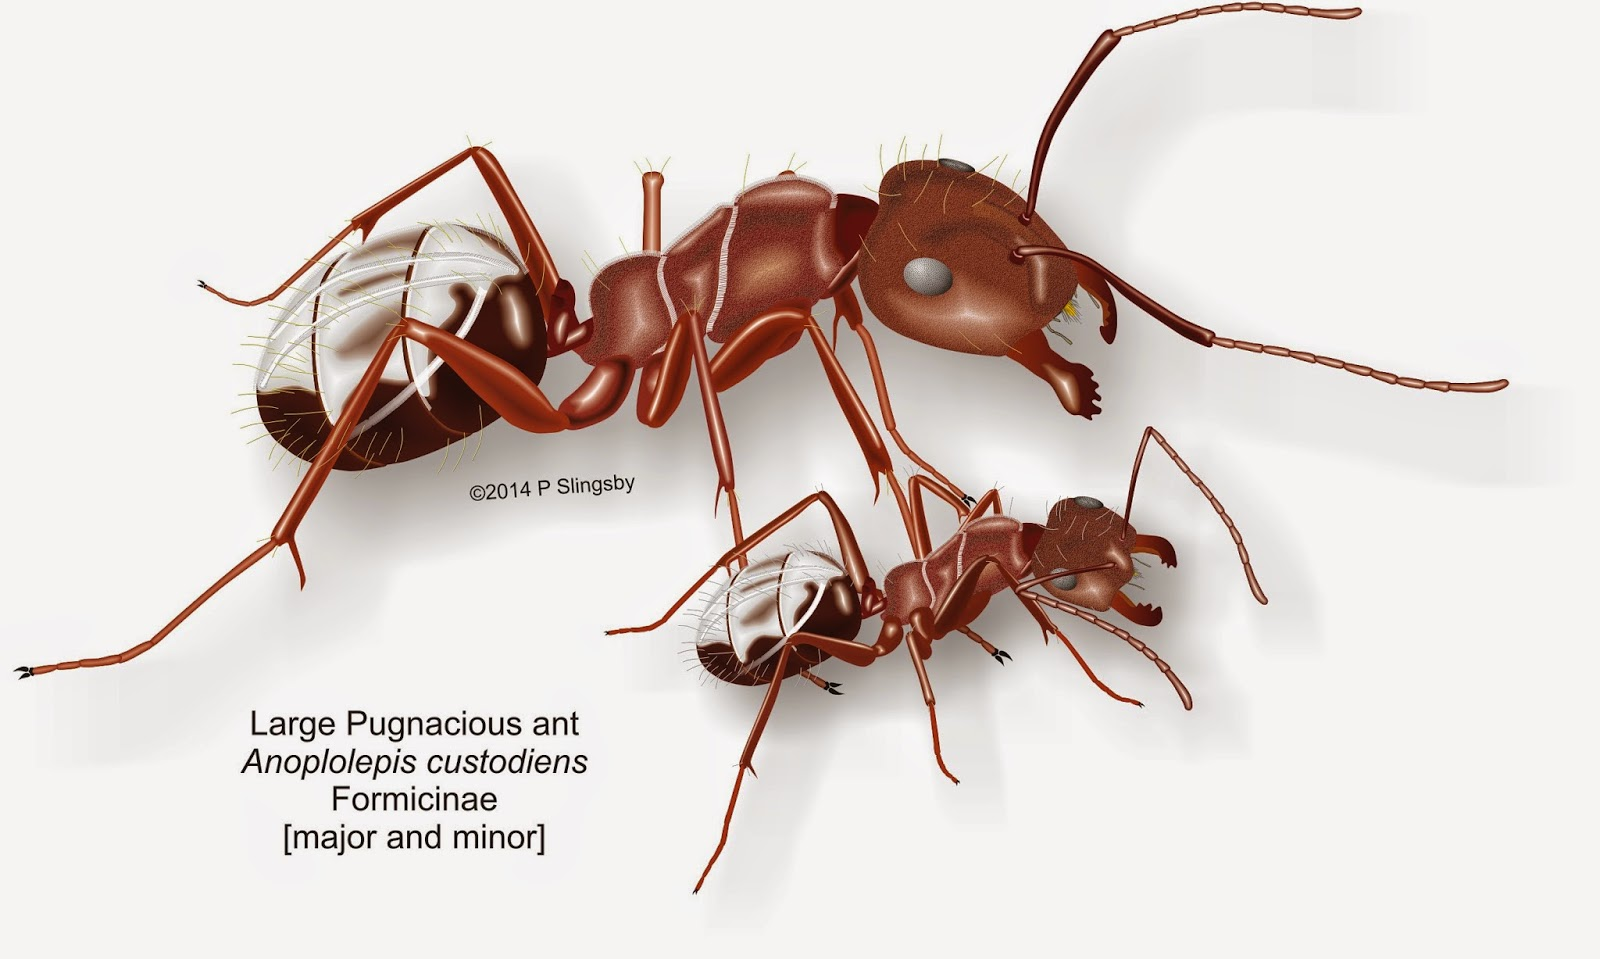 Ants of Southern Africa -: Camponotus species: Sugar ants